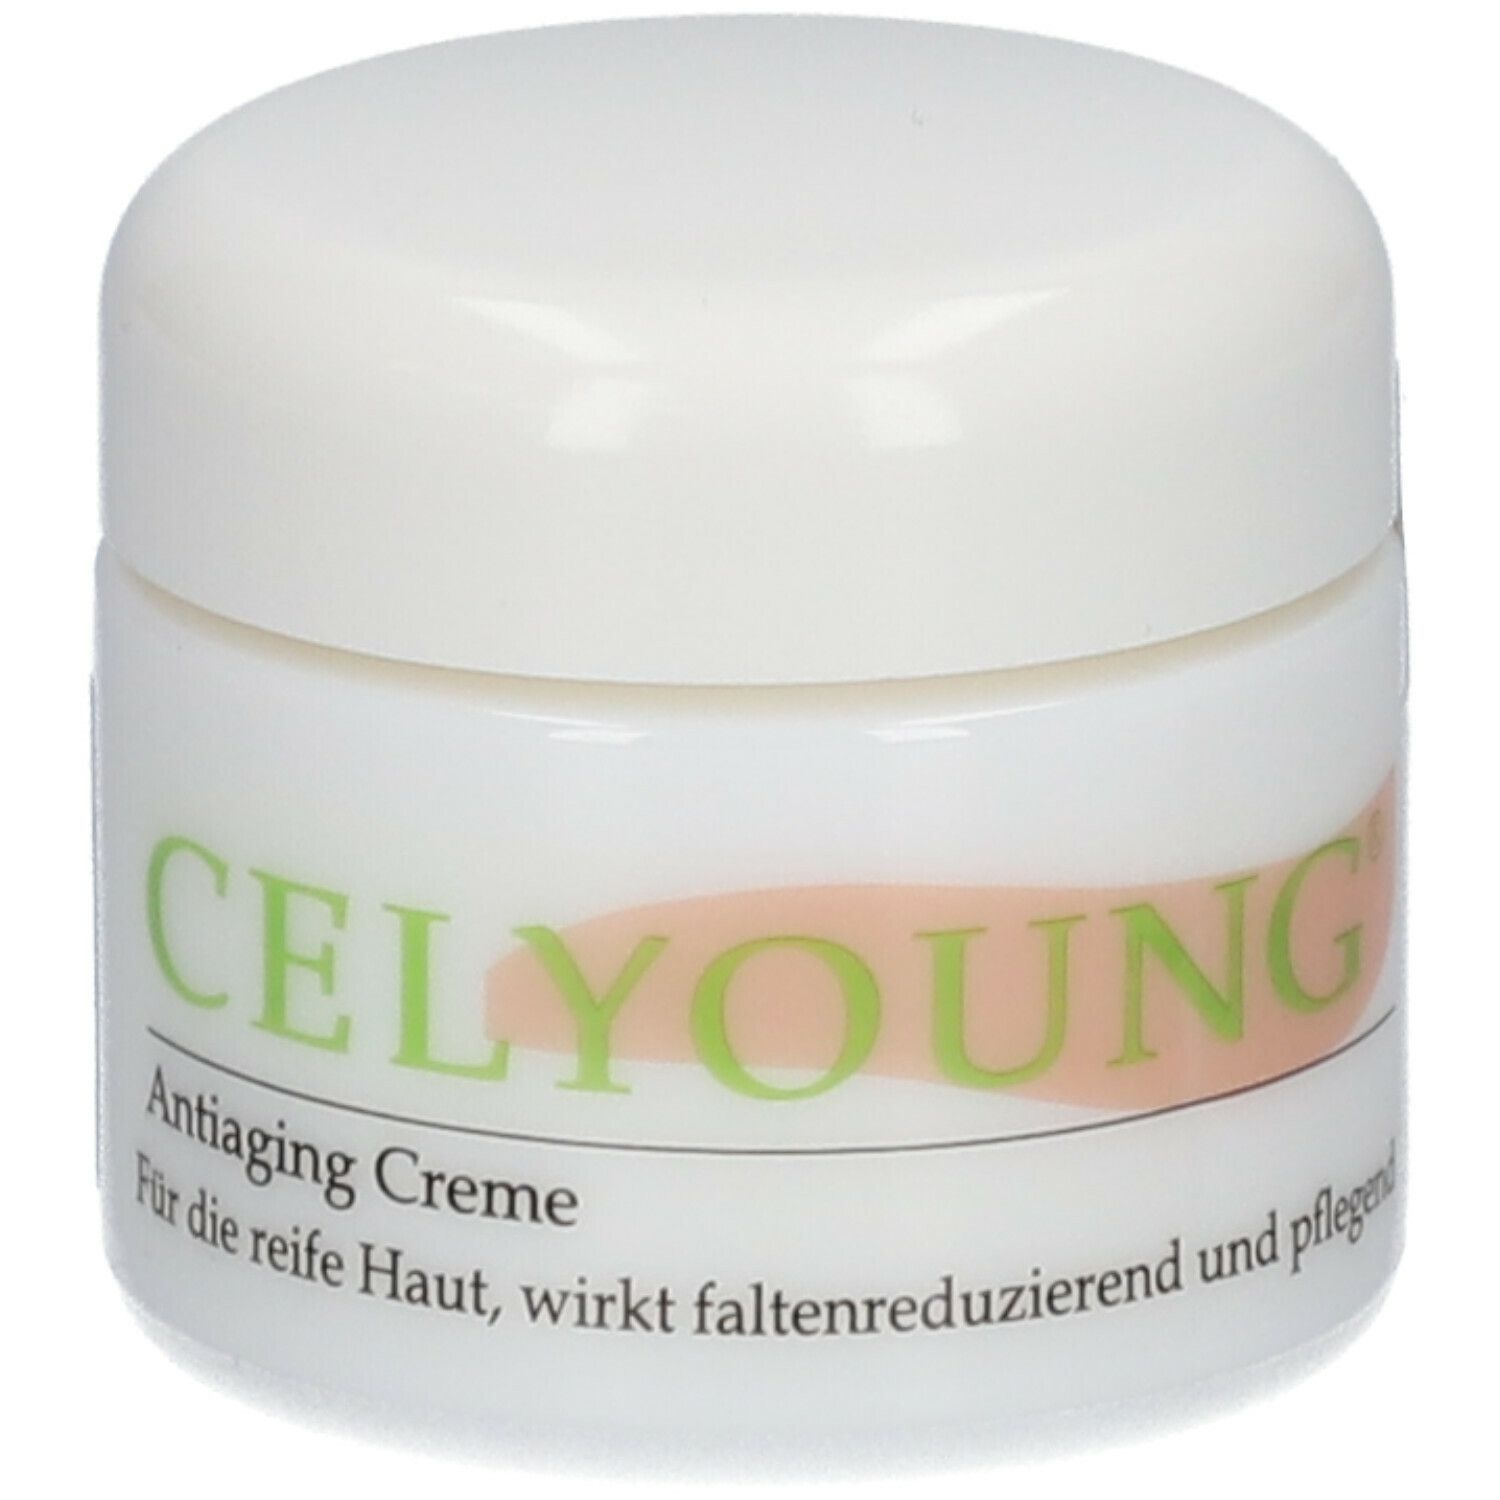 Image of CELYOUNG® Antiaging Creme